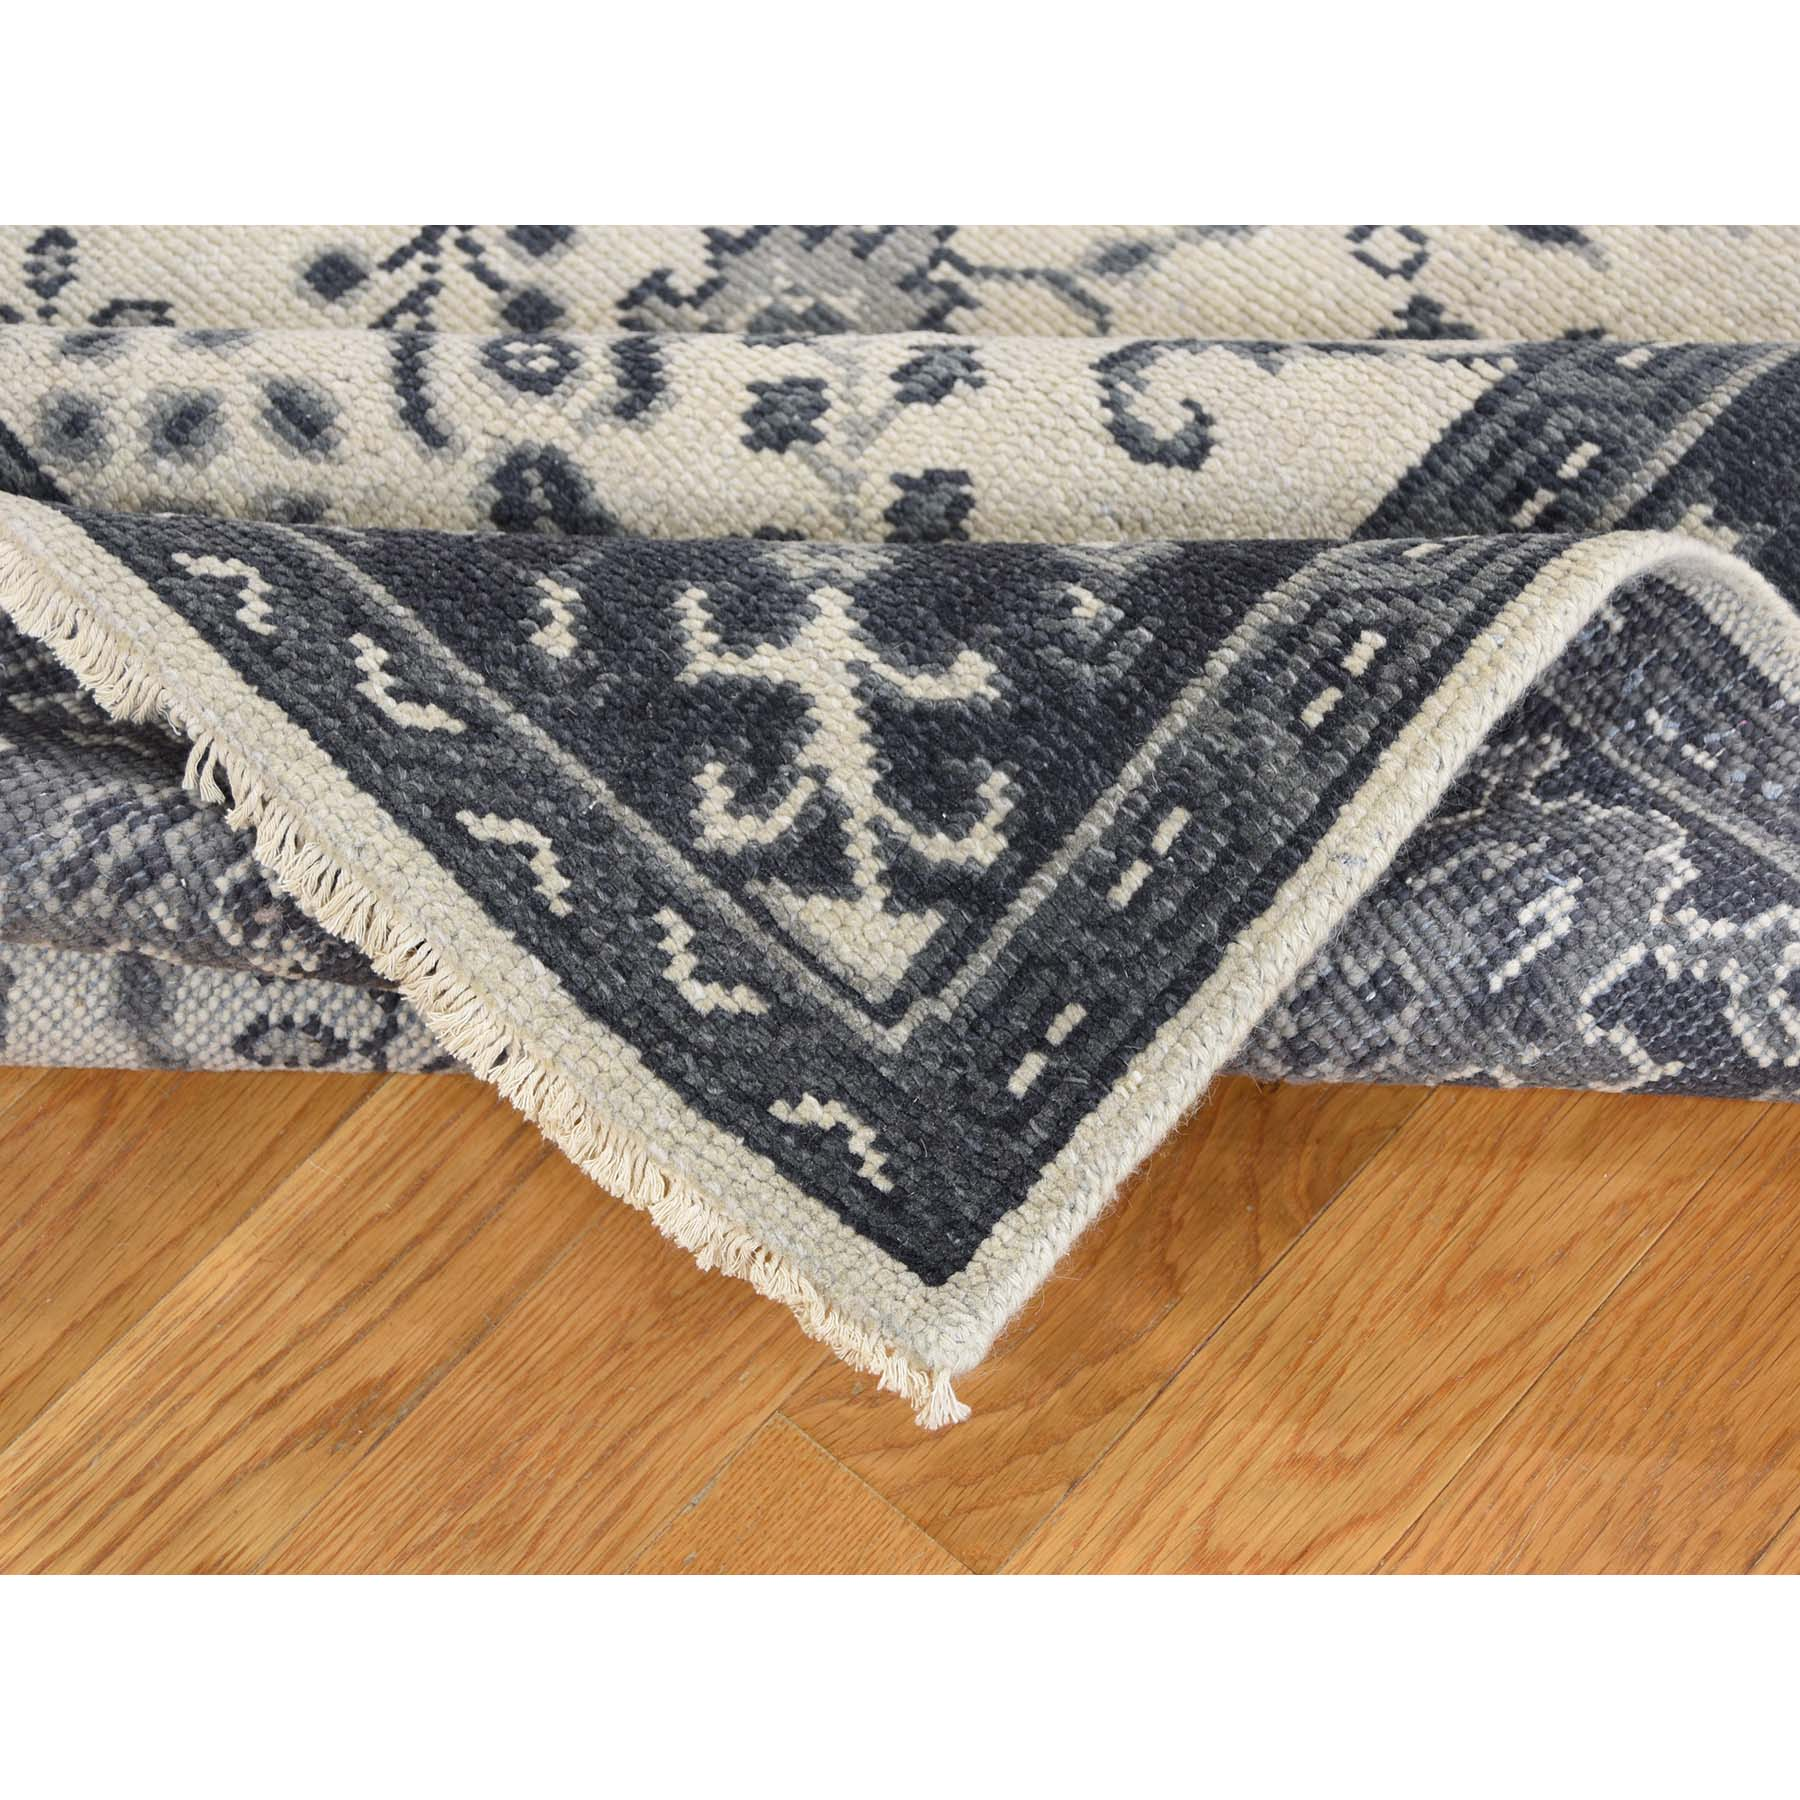 6'x9' Turkish Knot Oushak Sarouk Design Cropped Thin Hand-Knotted Oriental Rug